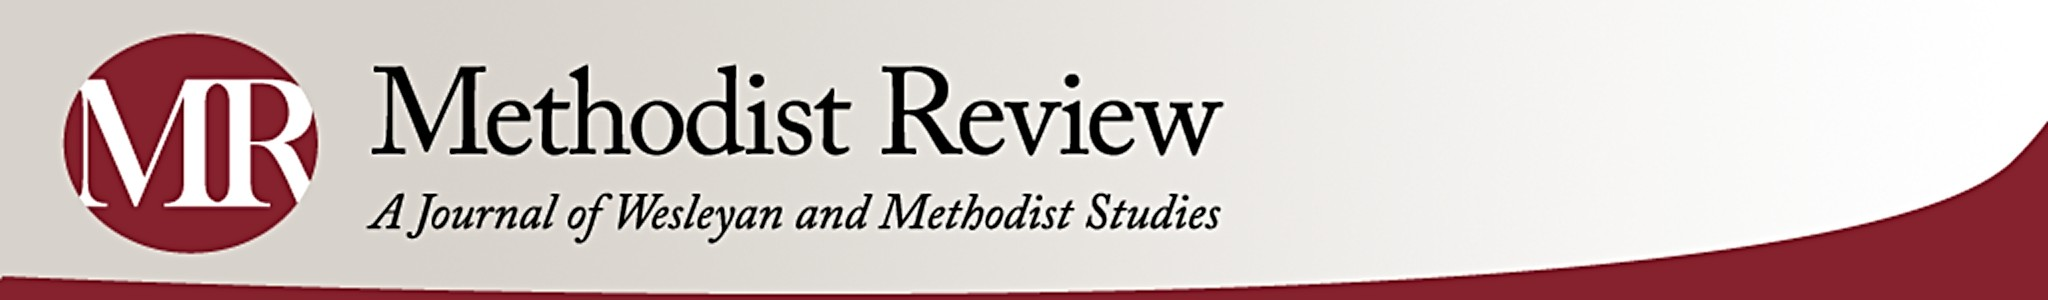 Logo for Methodist Review: A Journal of Wesleyan and Methodist Studies